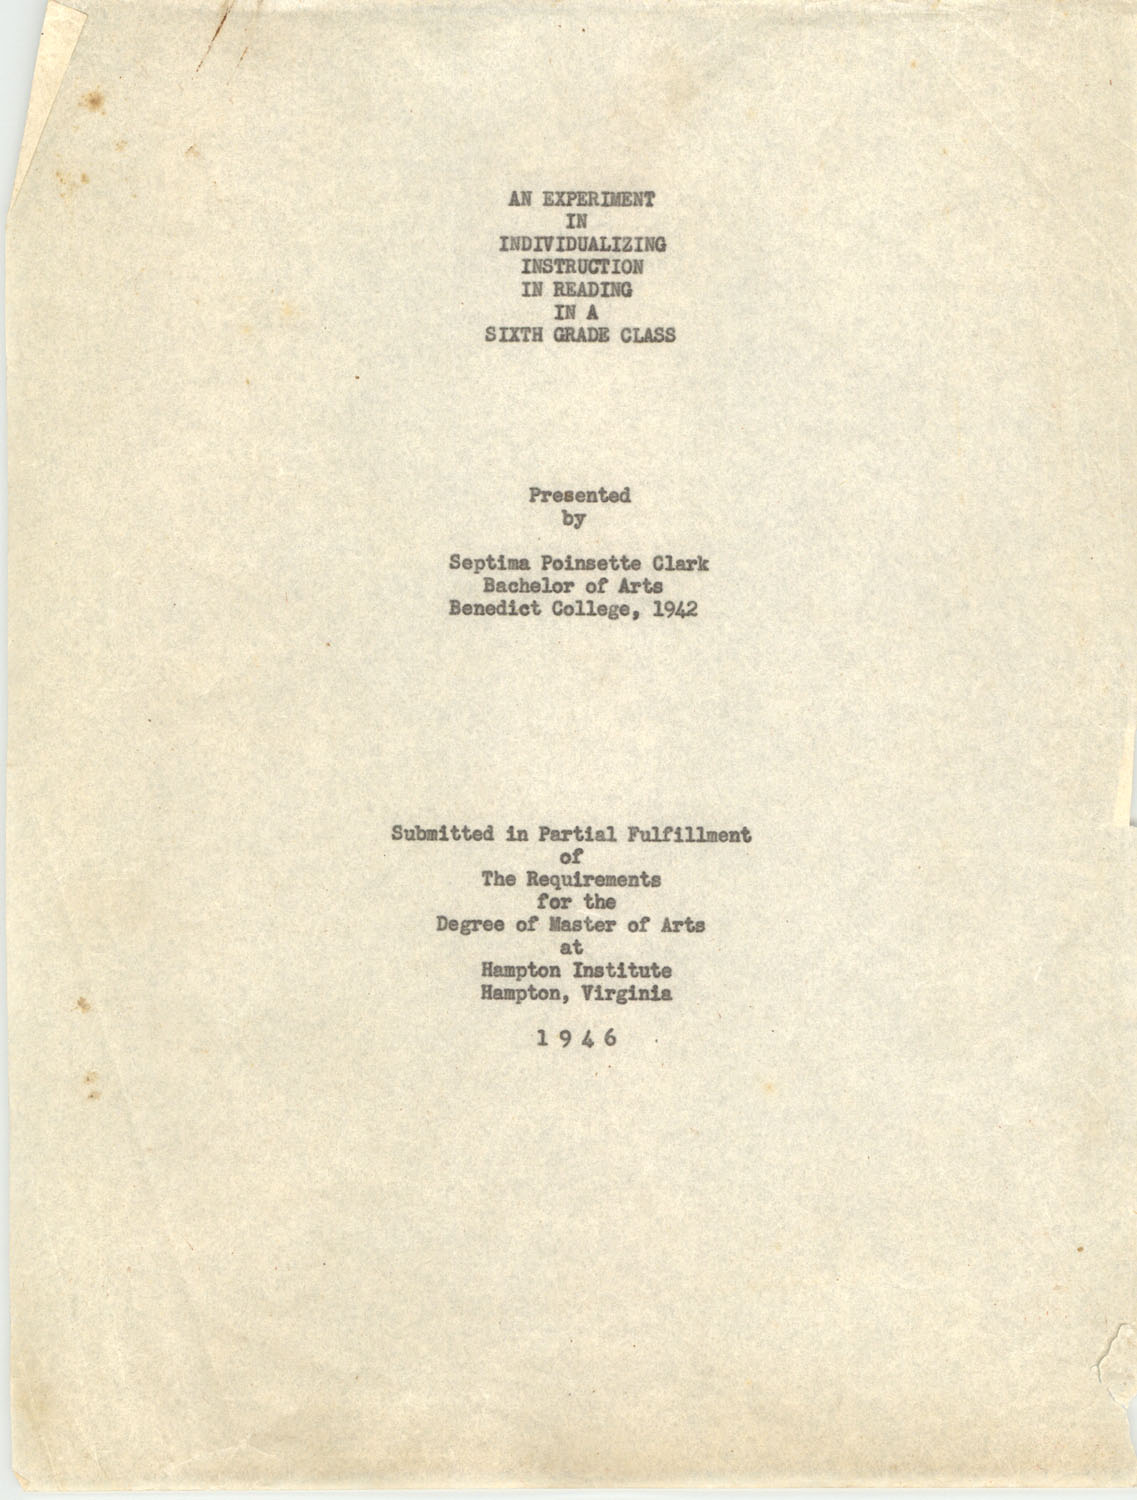 An Experiment in Individualizing Instruction in Reading in a Sixth Grade Class, 1946, Title Page